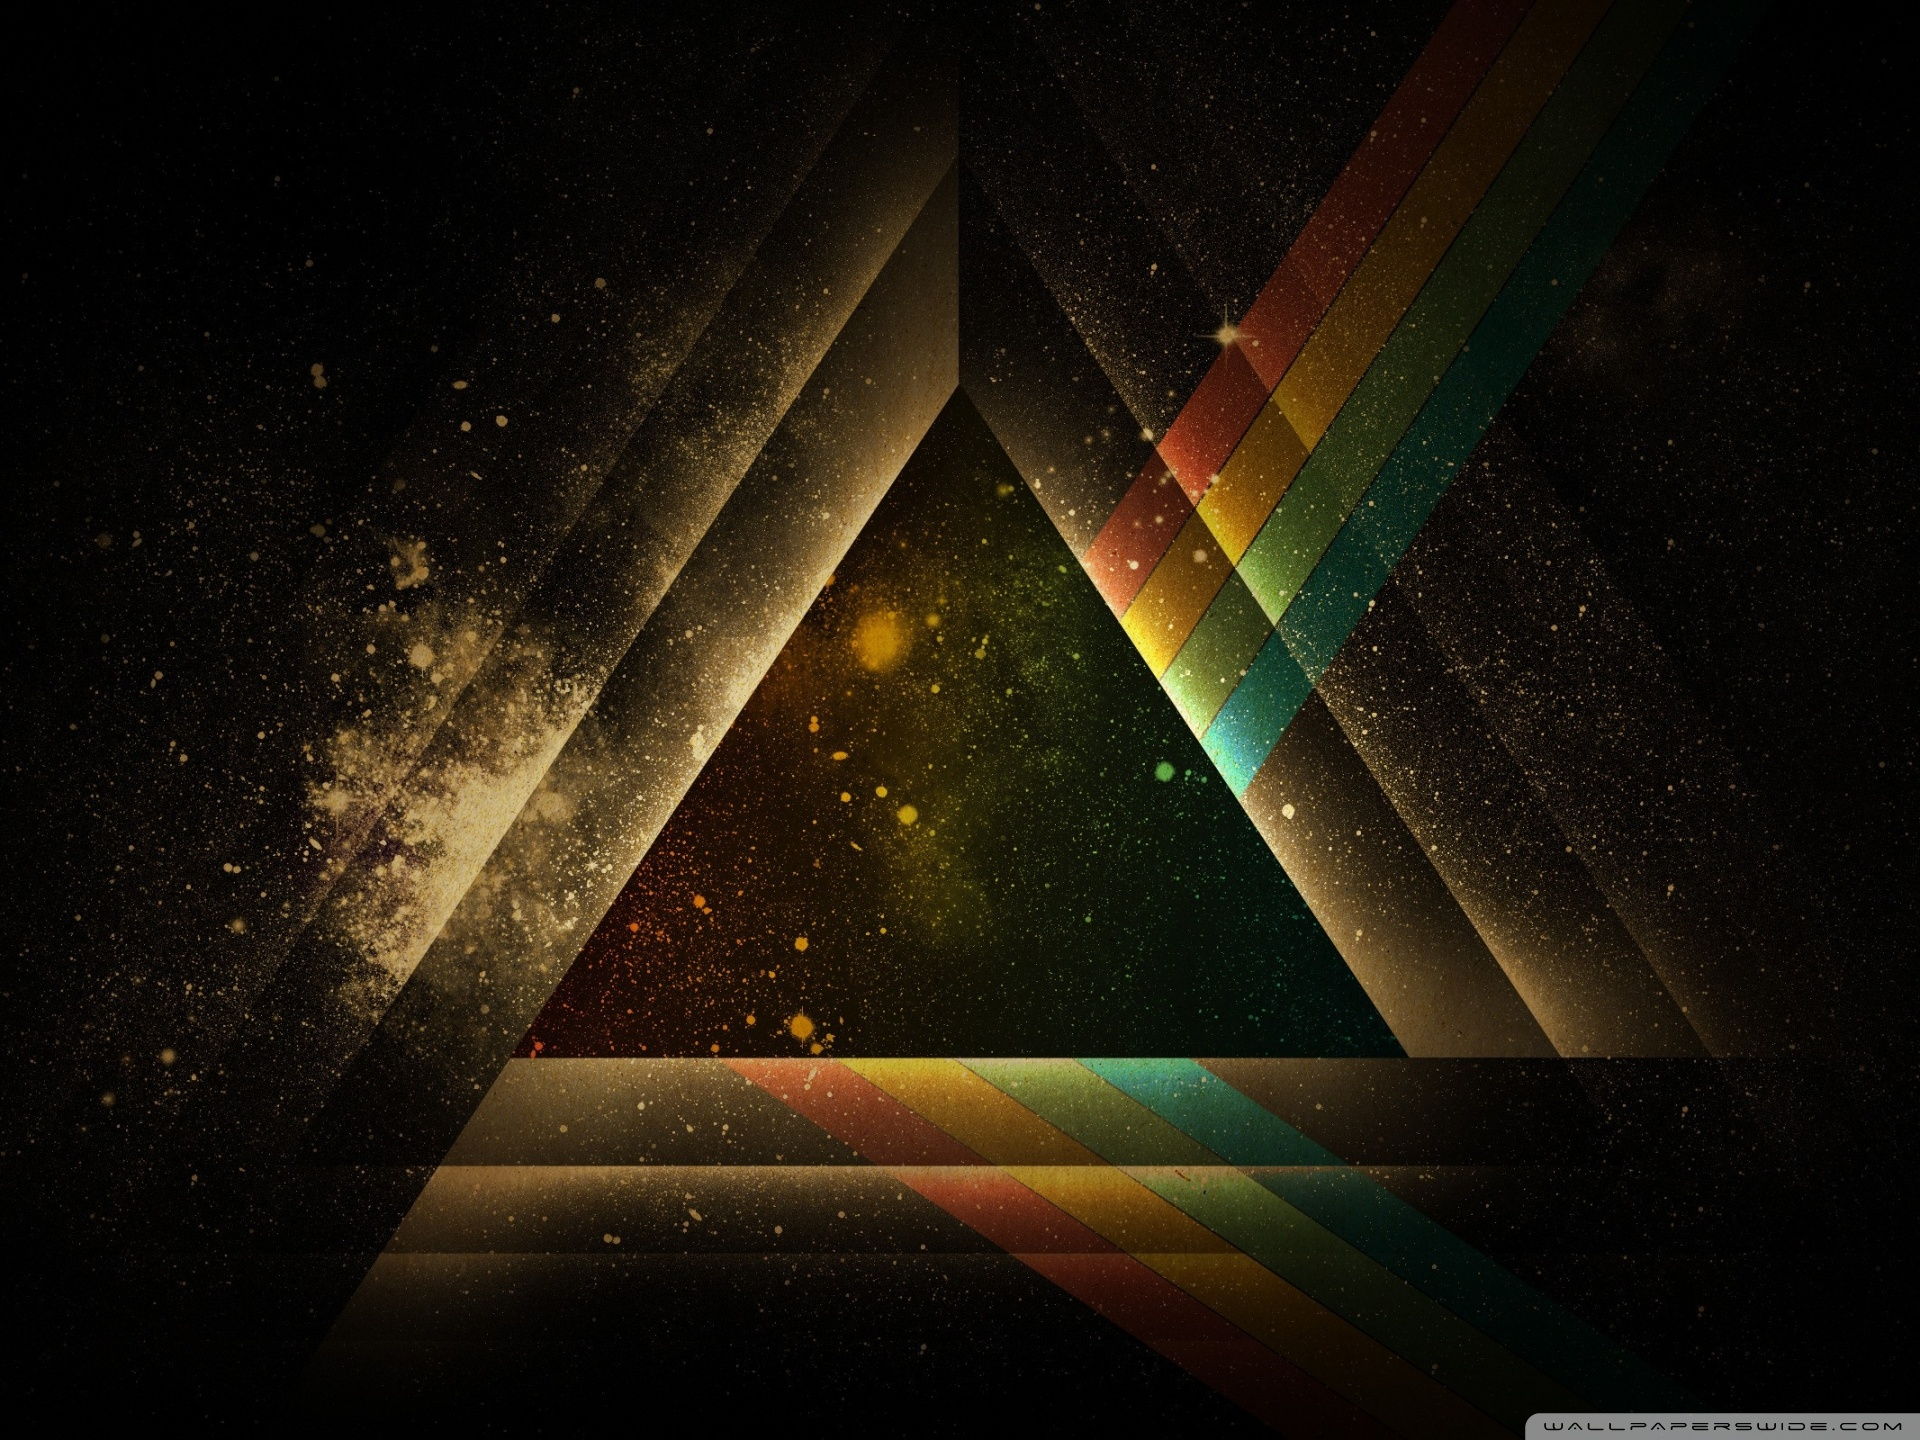 <b>Pyramid</b> by <b>Night Wallpaper</b> - World HD <b>Wallpapers</b> - HDwallpapers.net